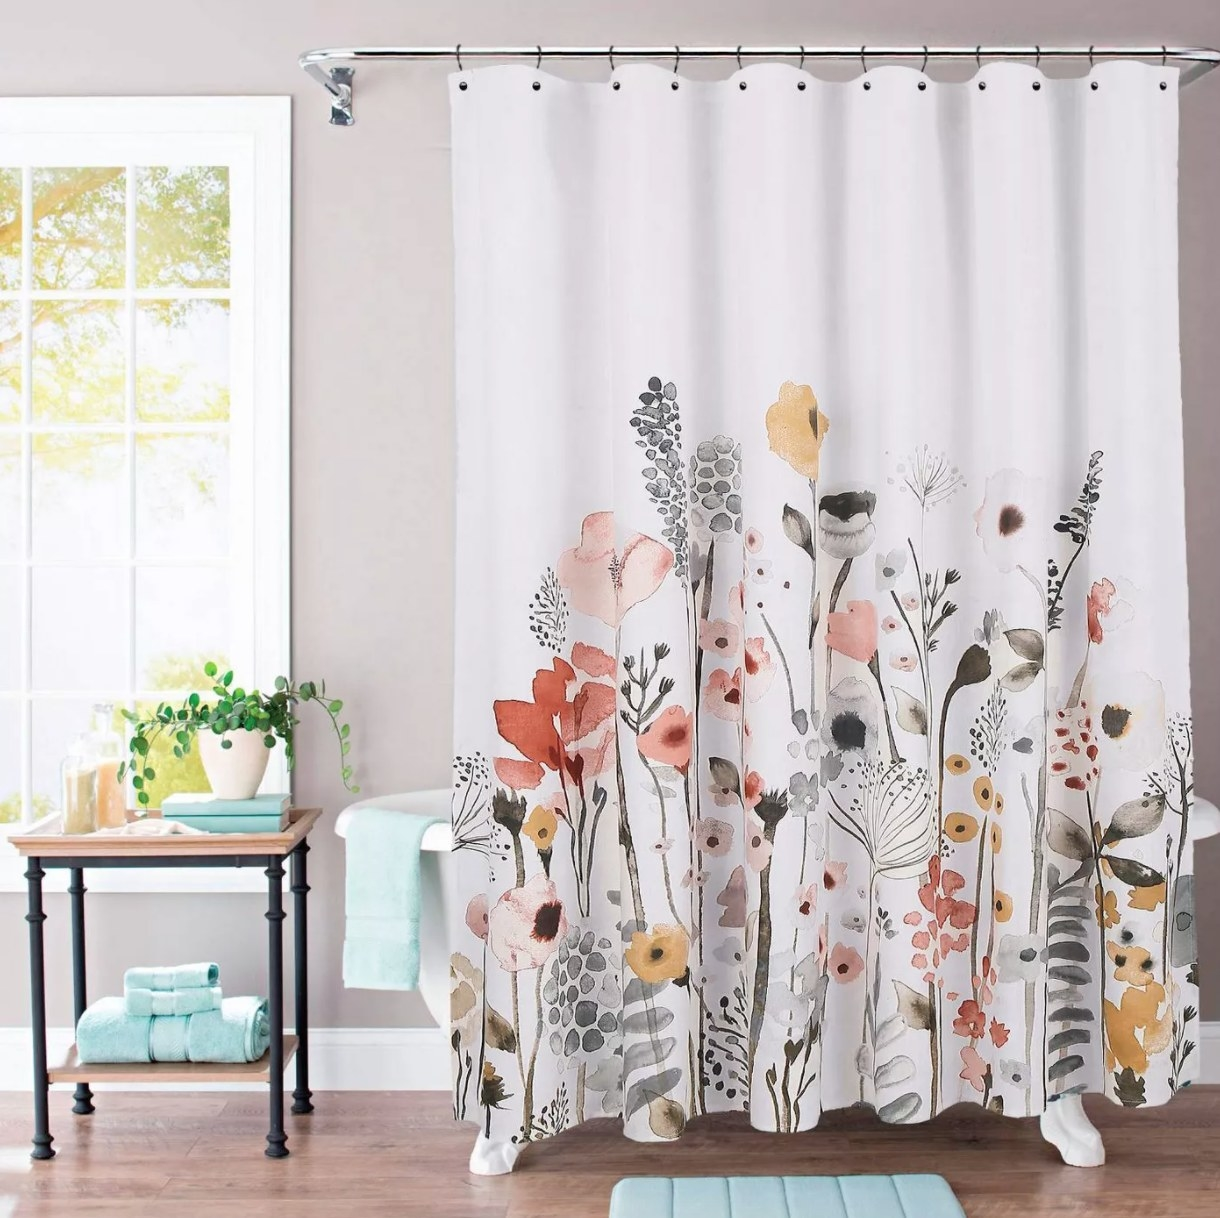 A white shower curtain with gray, pink, and muted yellow design